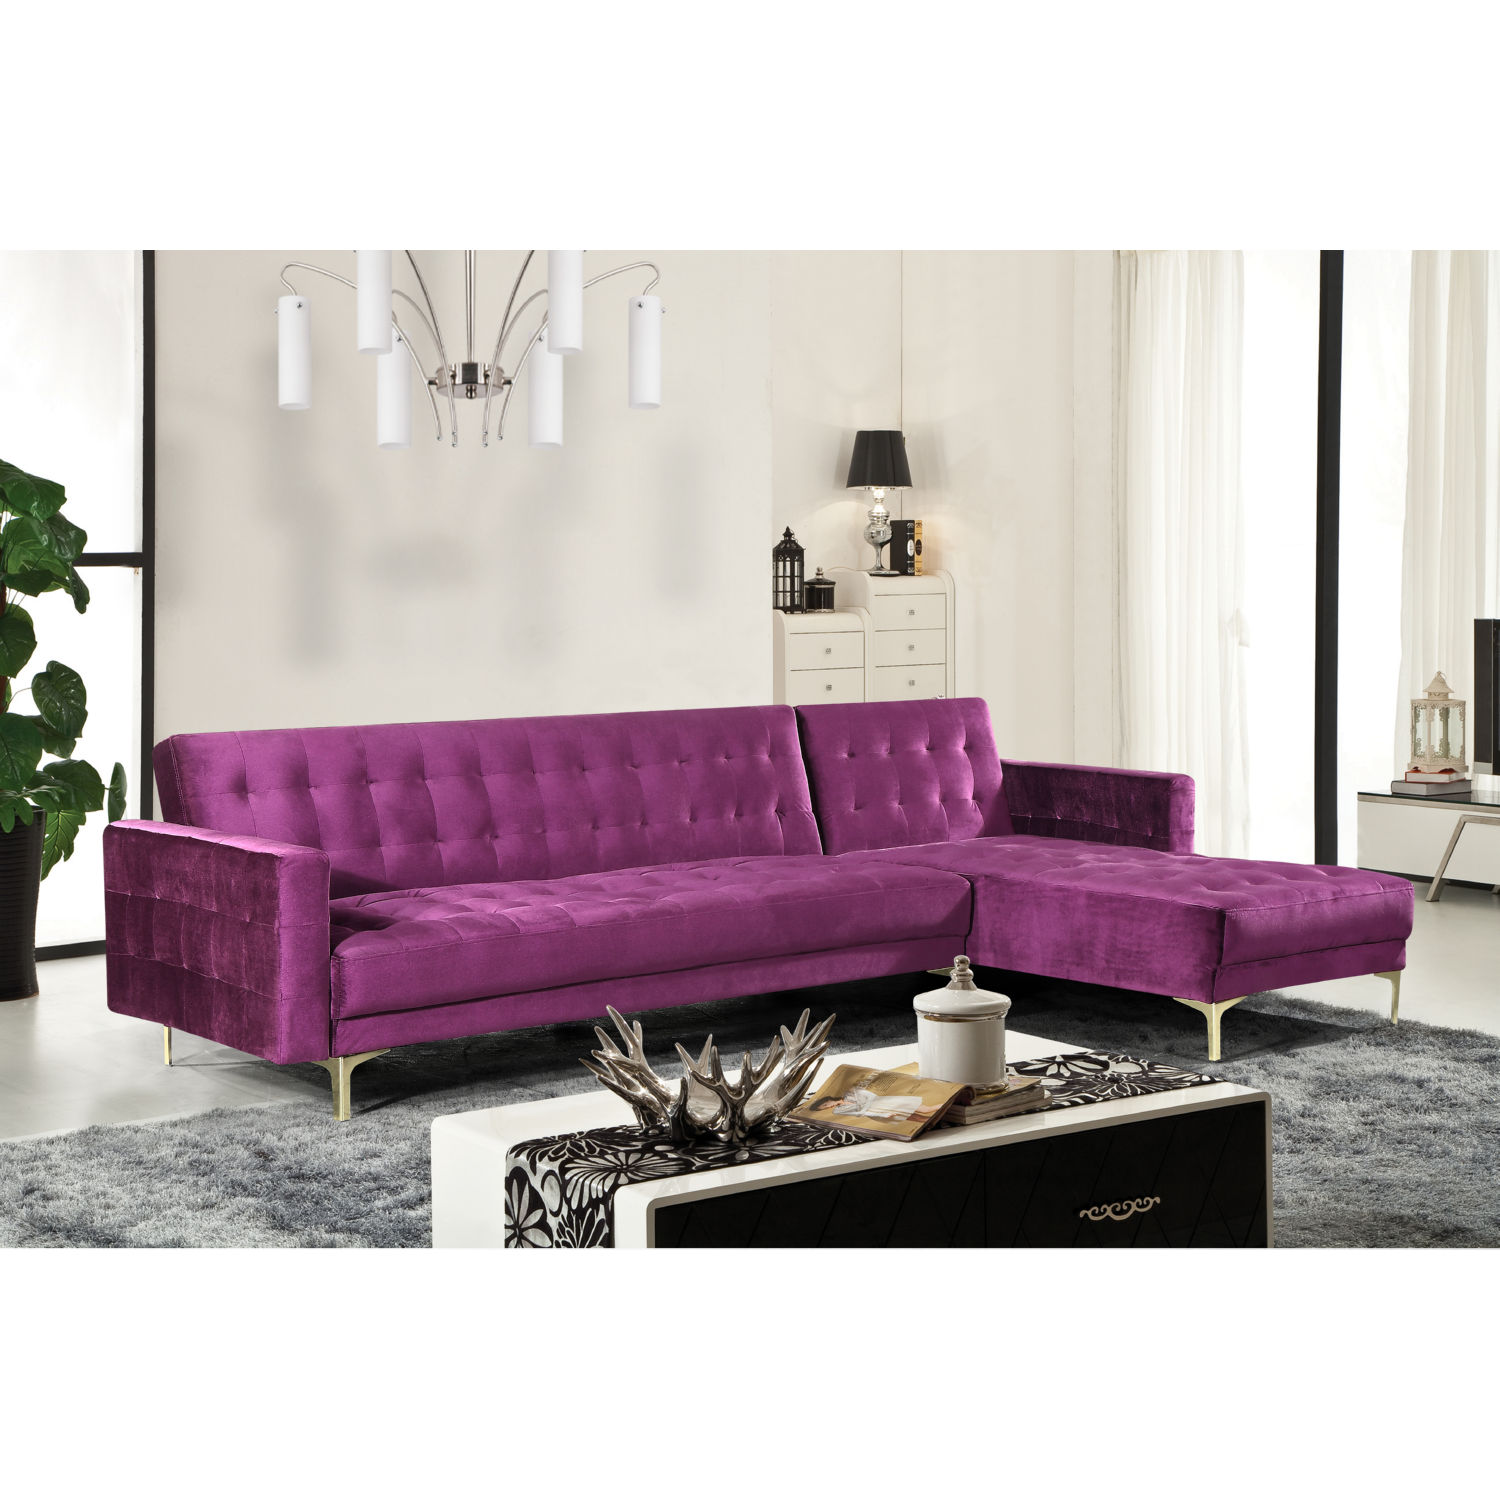 Astounding Amandal Sectional Sofa W Right Chaise In Tufted Purple Velvet By Chic Home Pdpeps Interior Chair Design Pdpepsorg